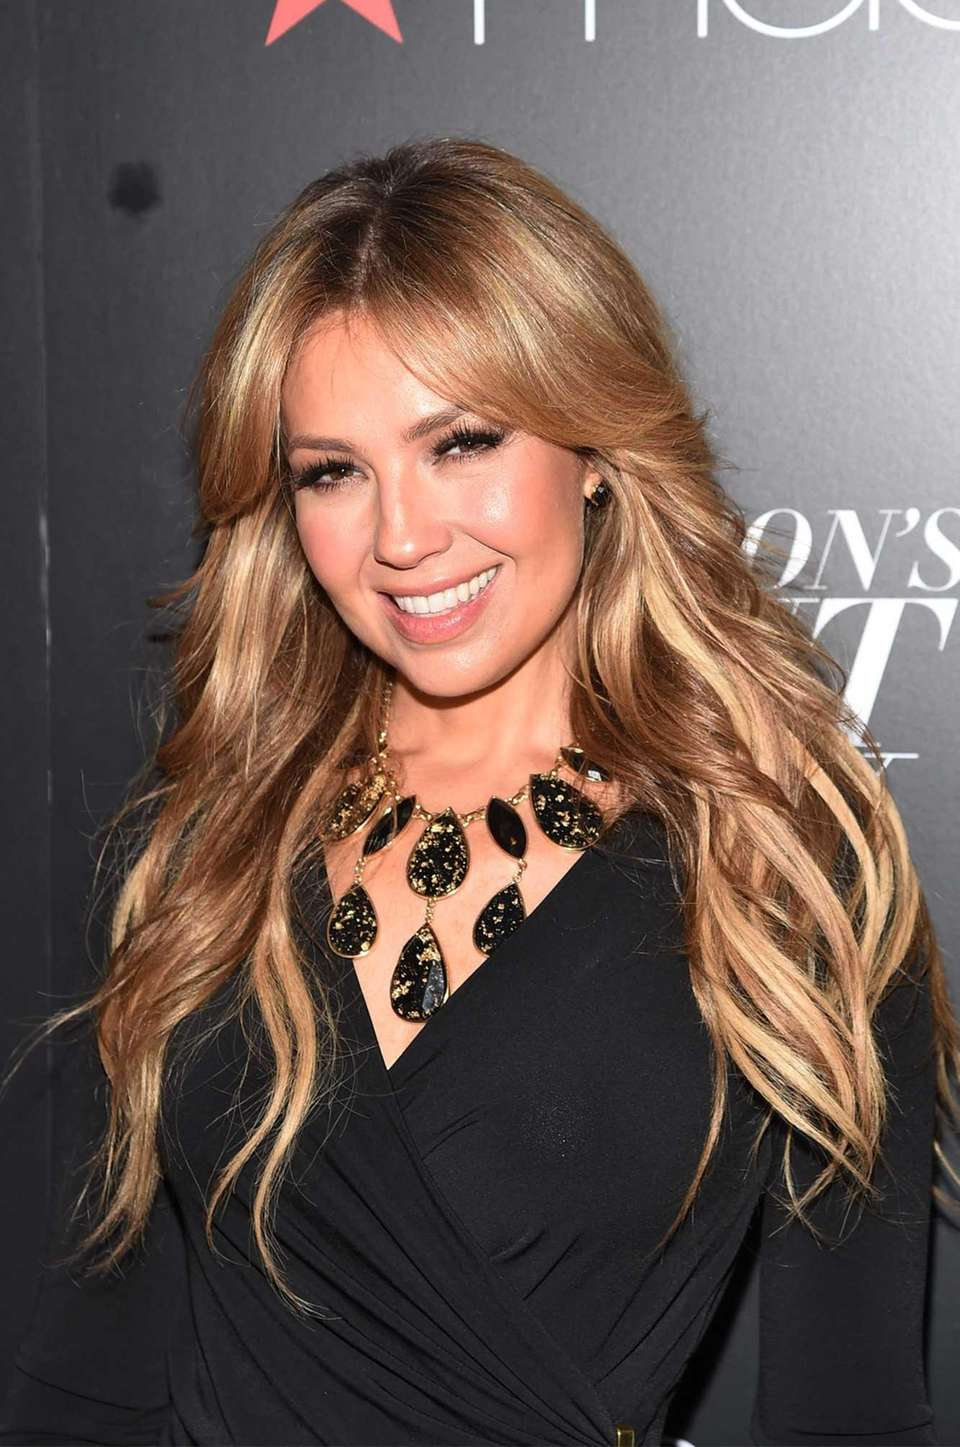 Thalia appears at Macy's Presents Fashion's Front Row